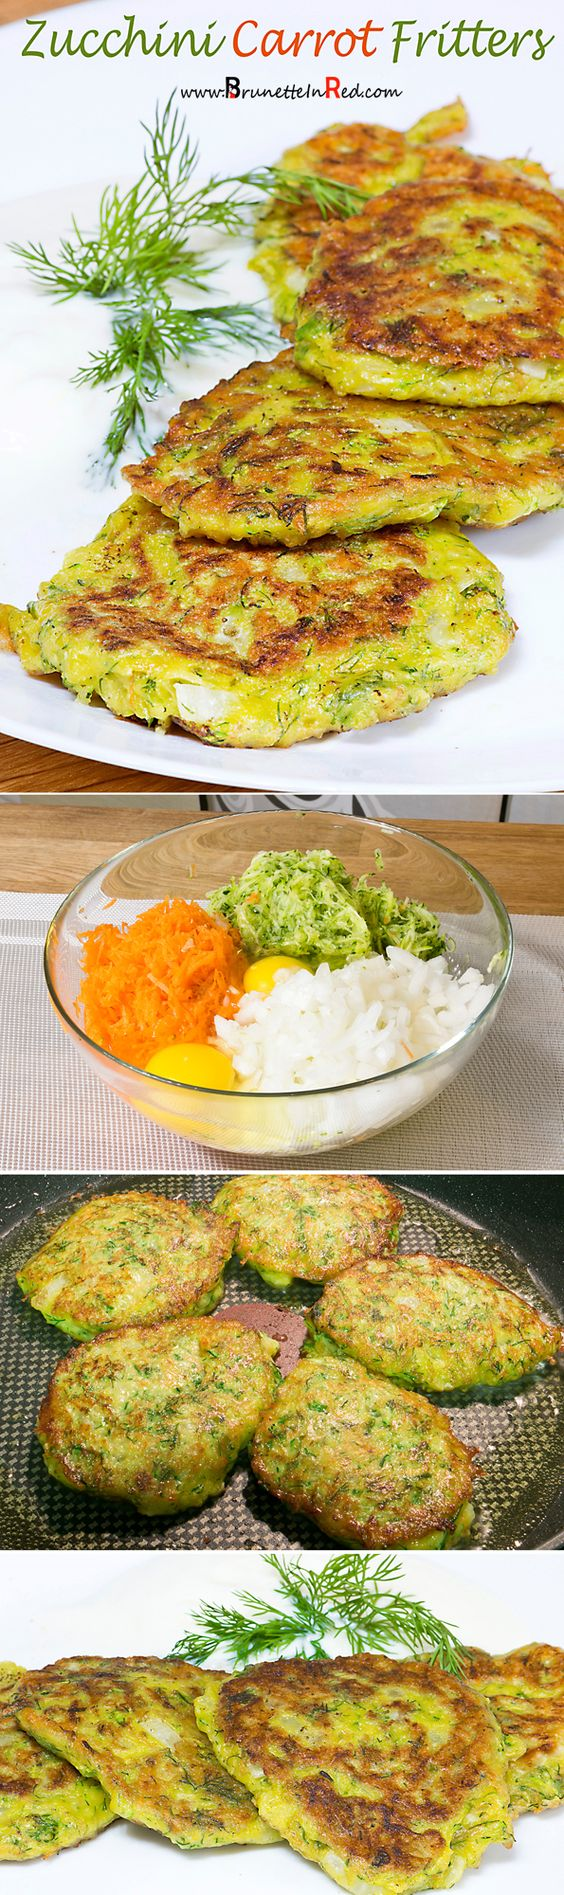 Zucchini Carrot Fritters | Fritters, Carrots and Zucchini